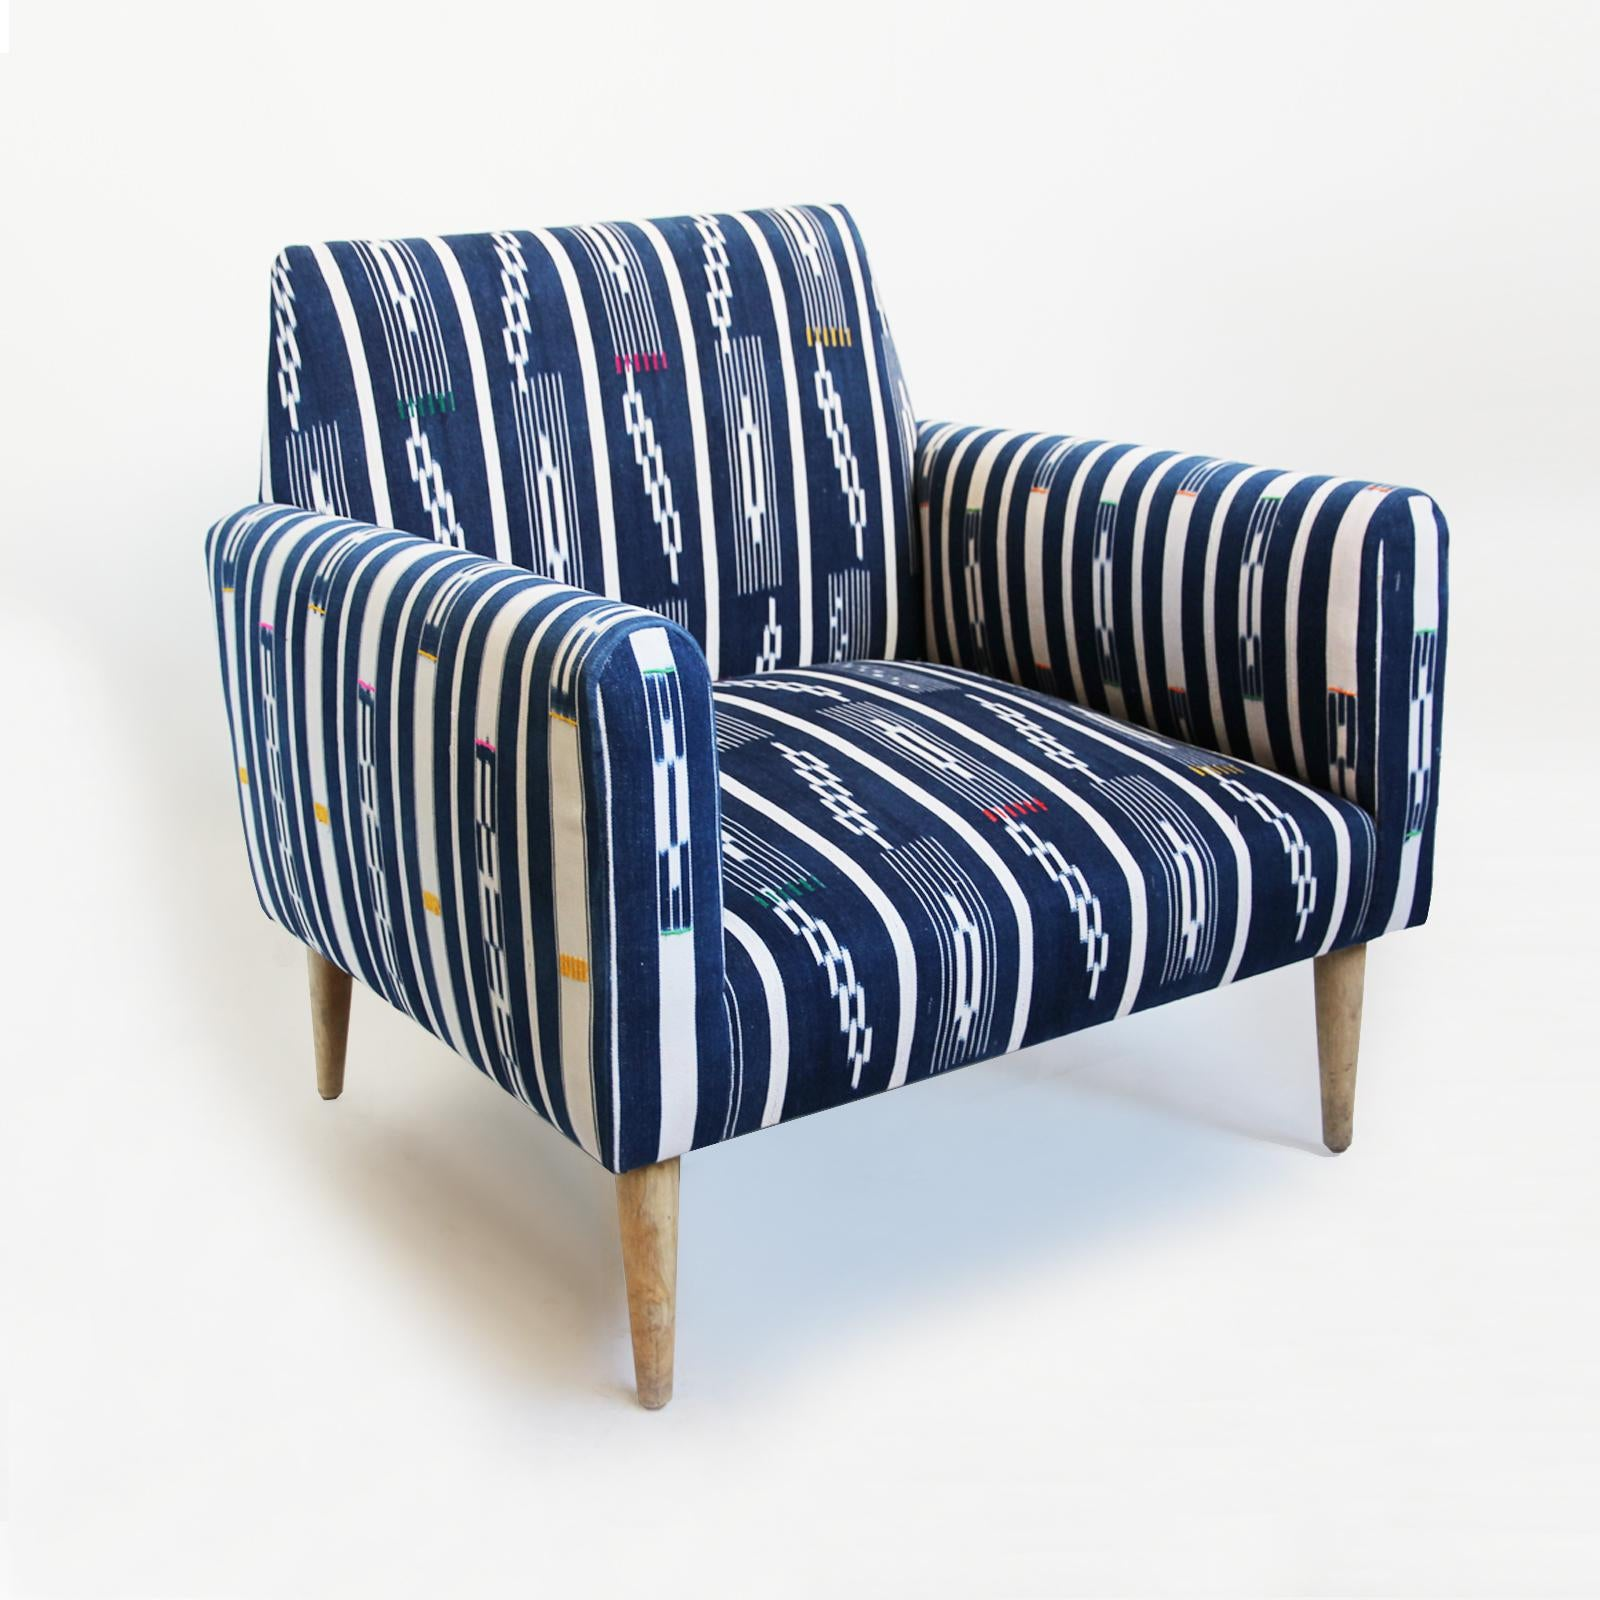 Merveilleux Boho Chic Indigo Ikat Adire Arm Chair For Sale   Image 3 Of 5